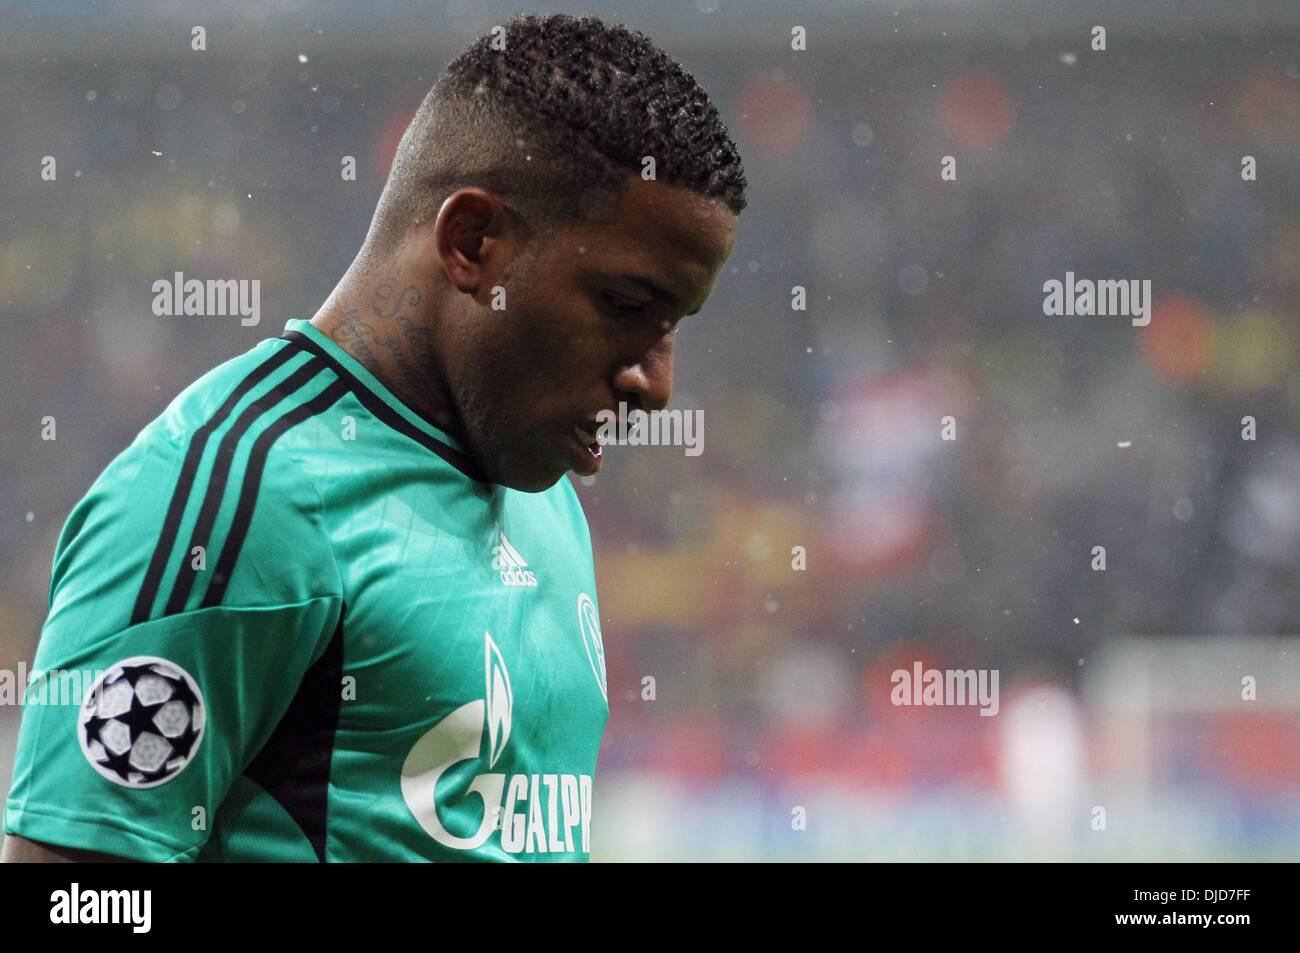 Steaua Bucharest Stock Photos Steaua Bucharest Stock Images Alamy